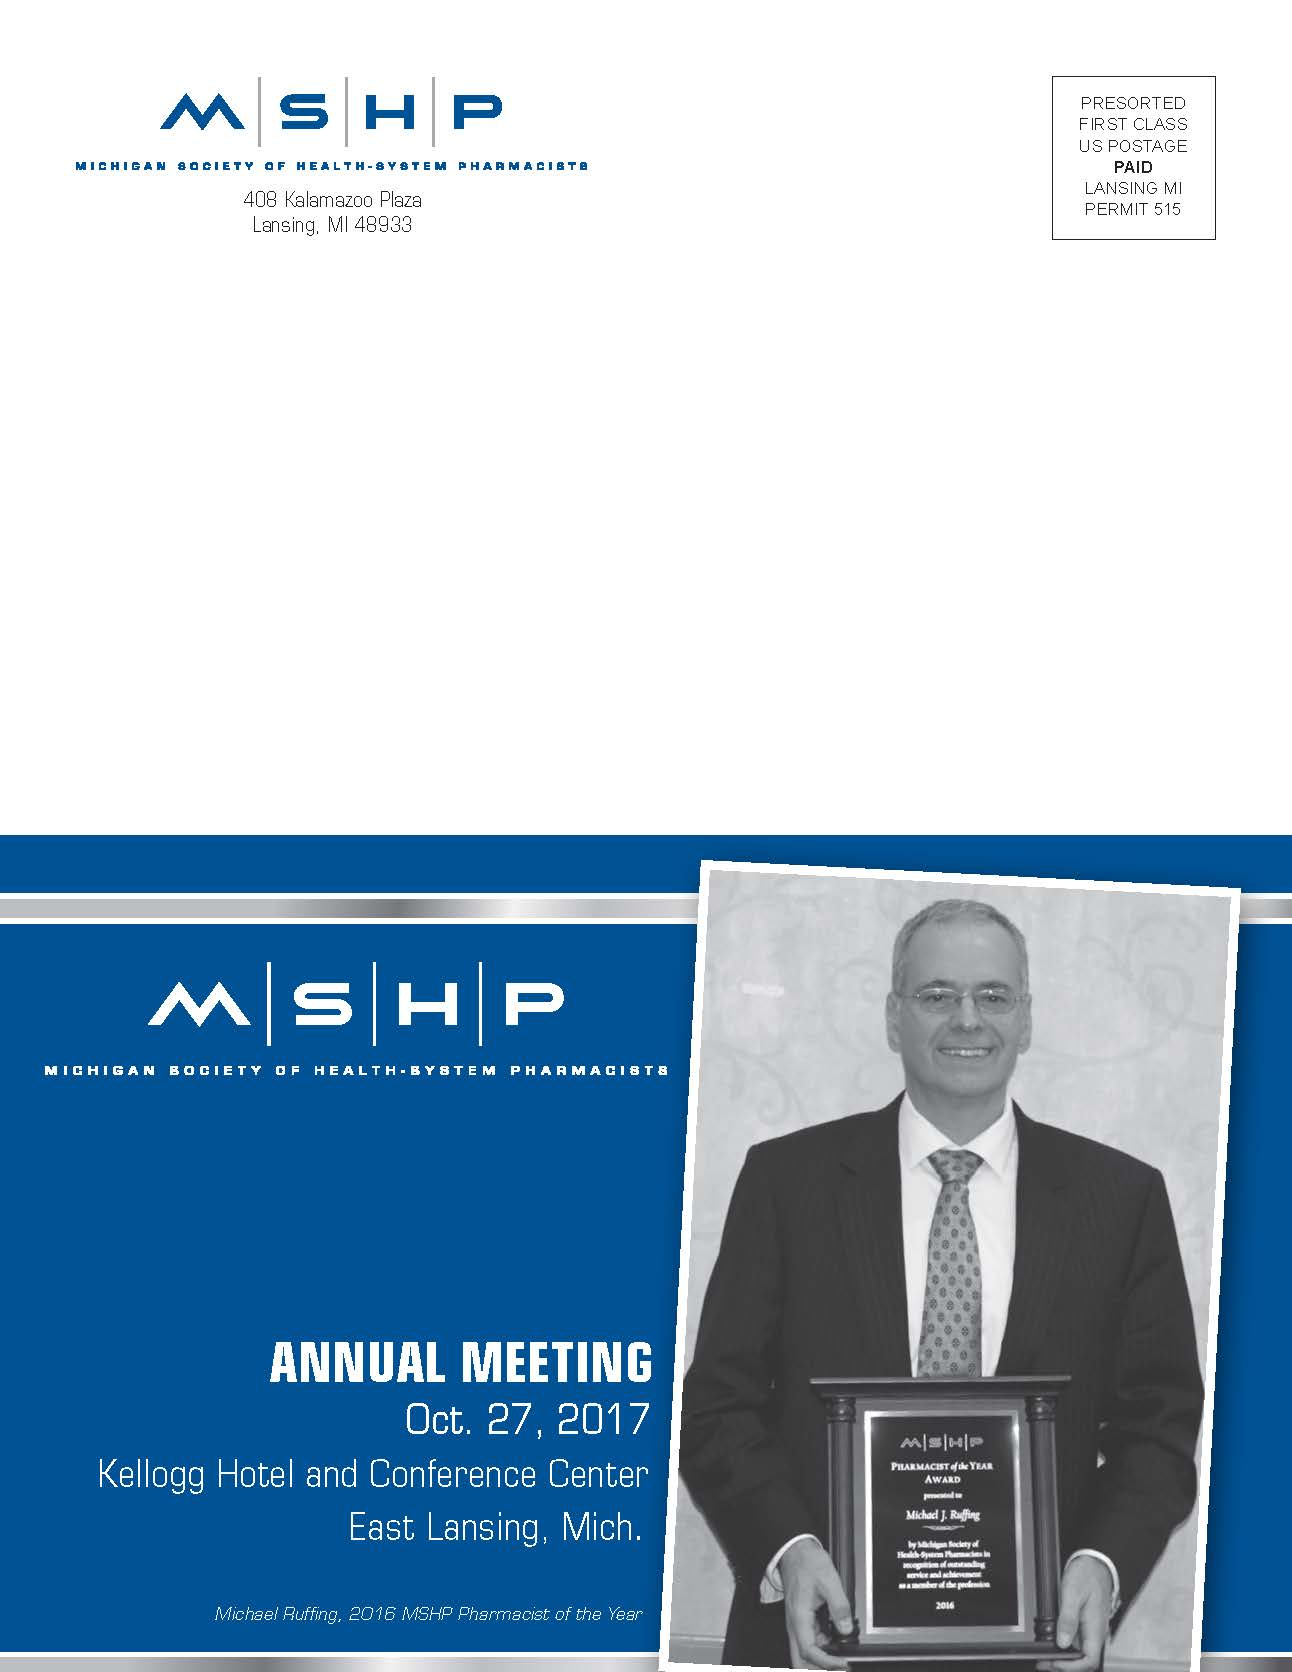 MPA | MSHP Annual Meeting - Oct  27, 2017